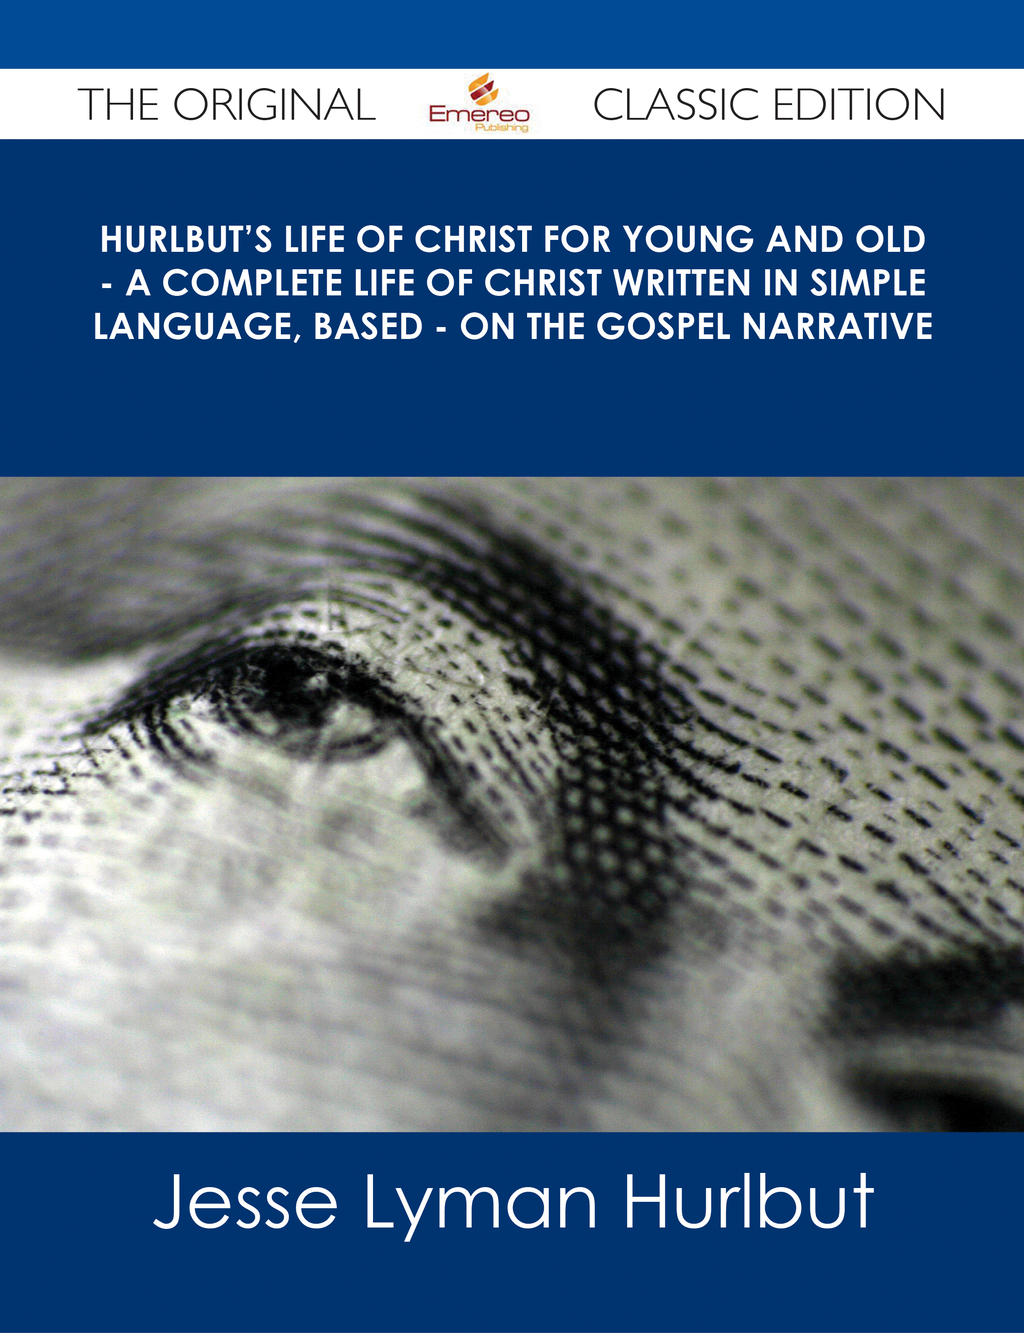 Hurlbut's Life of Christ For Young and Old - A Complete Life of Christ Written in Simple Language, Based - on the Gospel Narrative - The Original Classic Edition